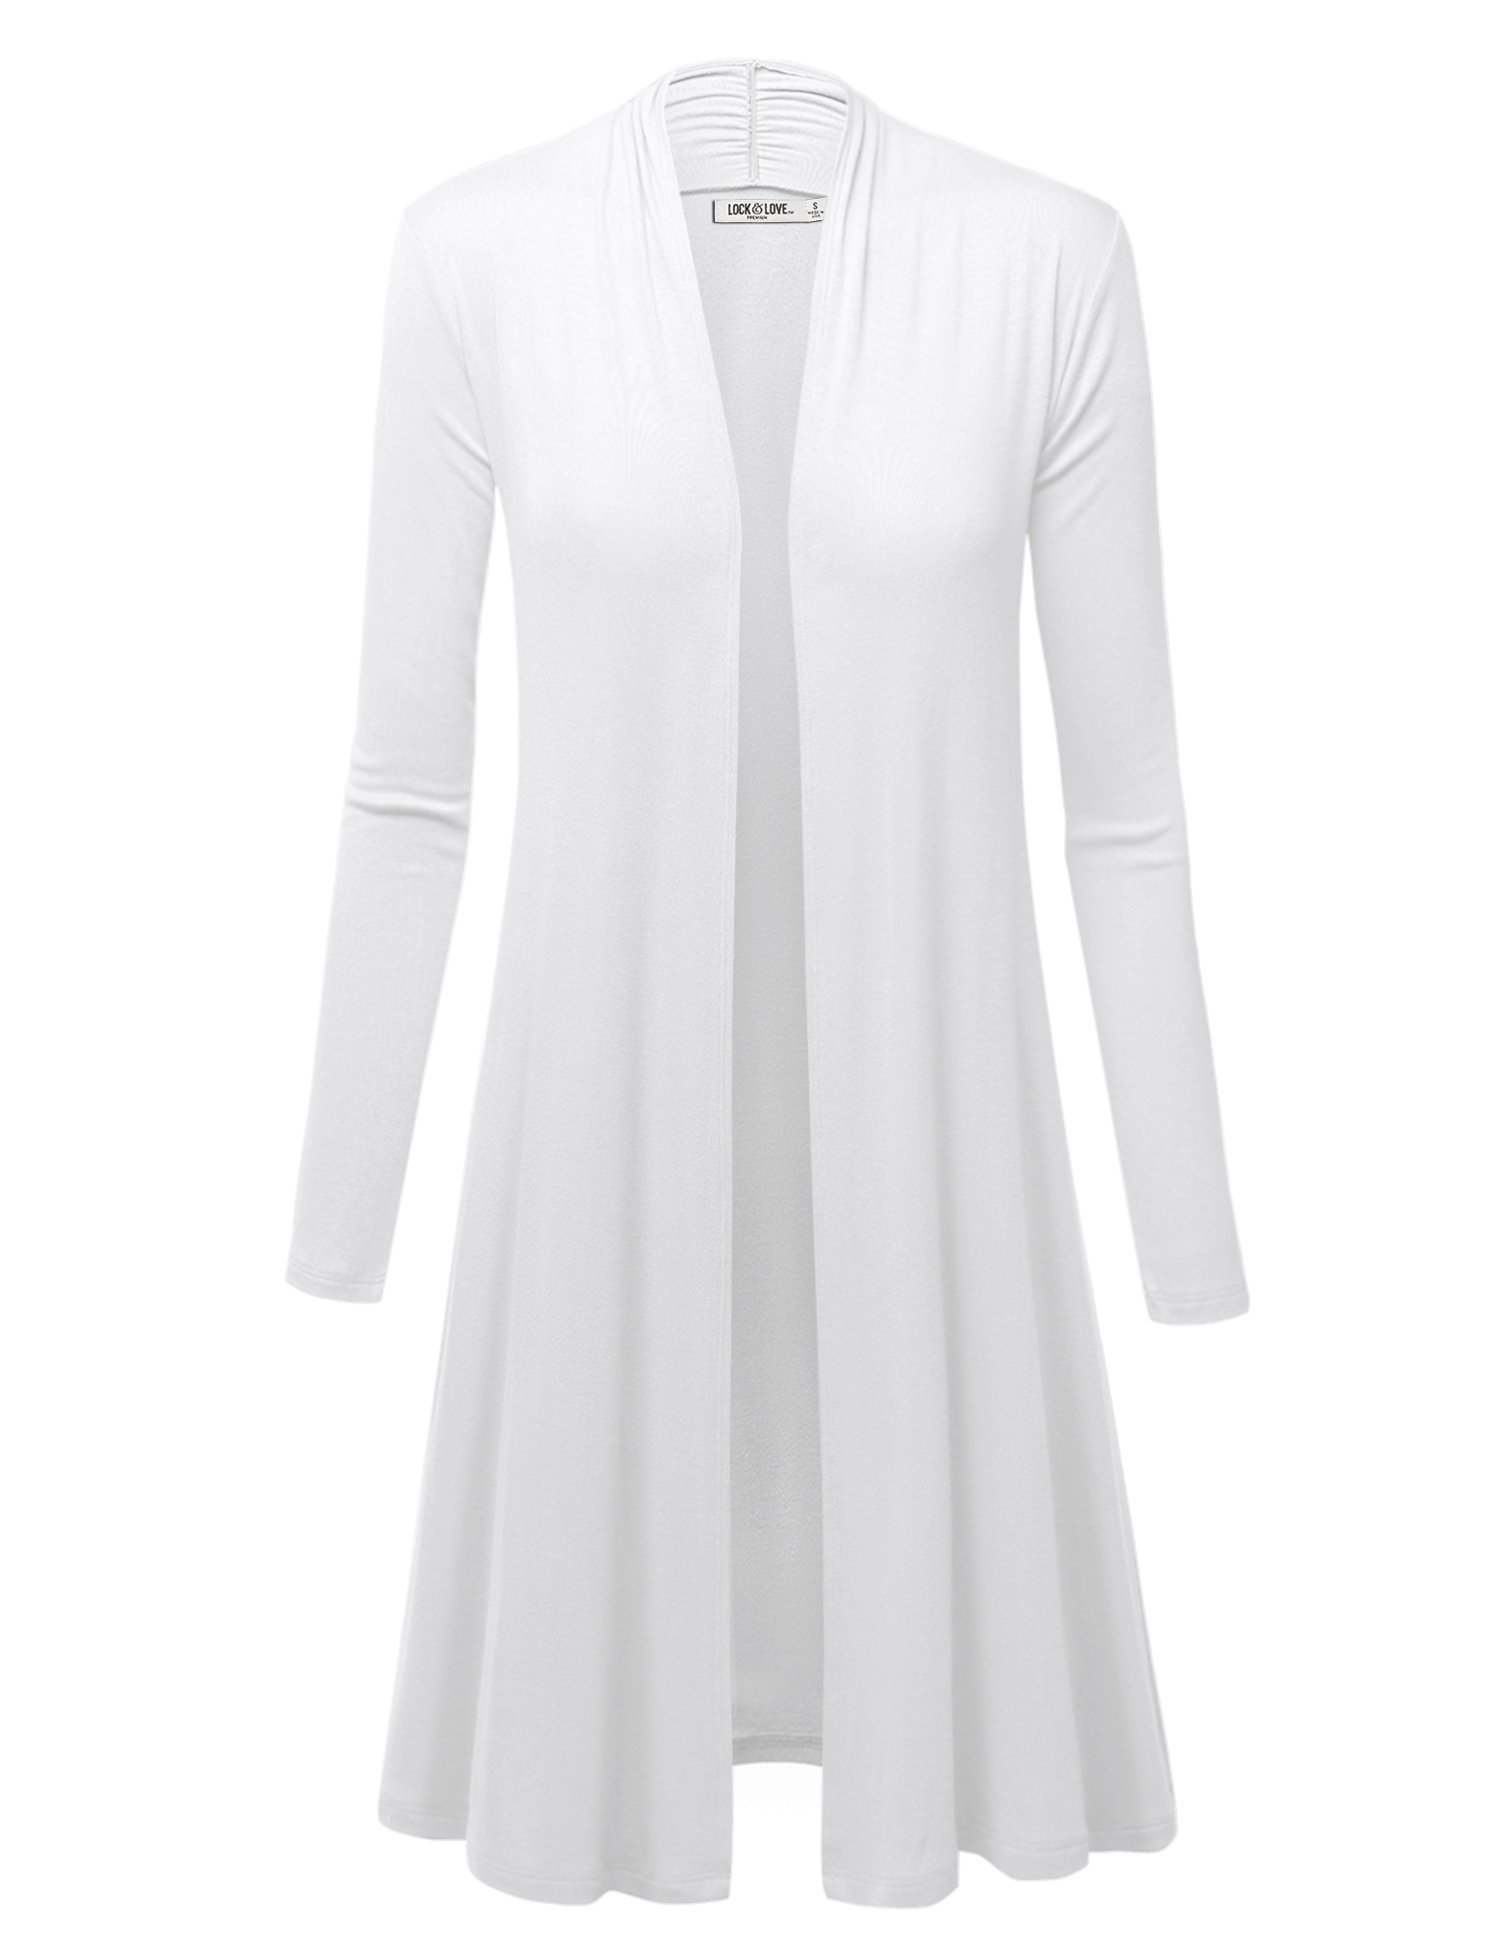 WSK1048 Womens Solid Long Sleeve Open Front Long Cardigan XL White